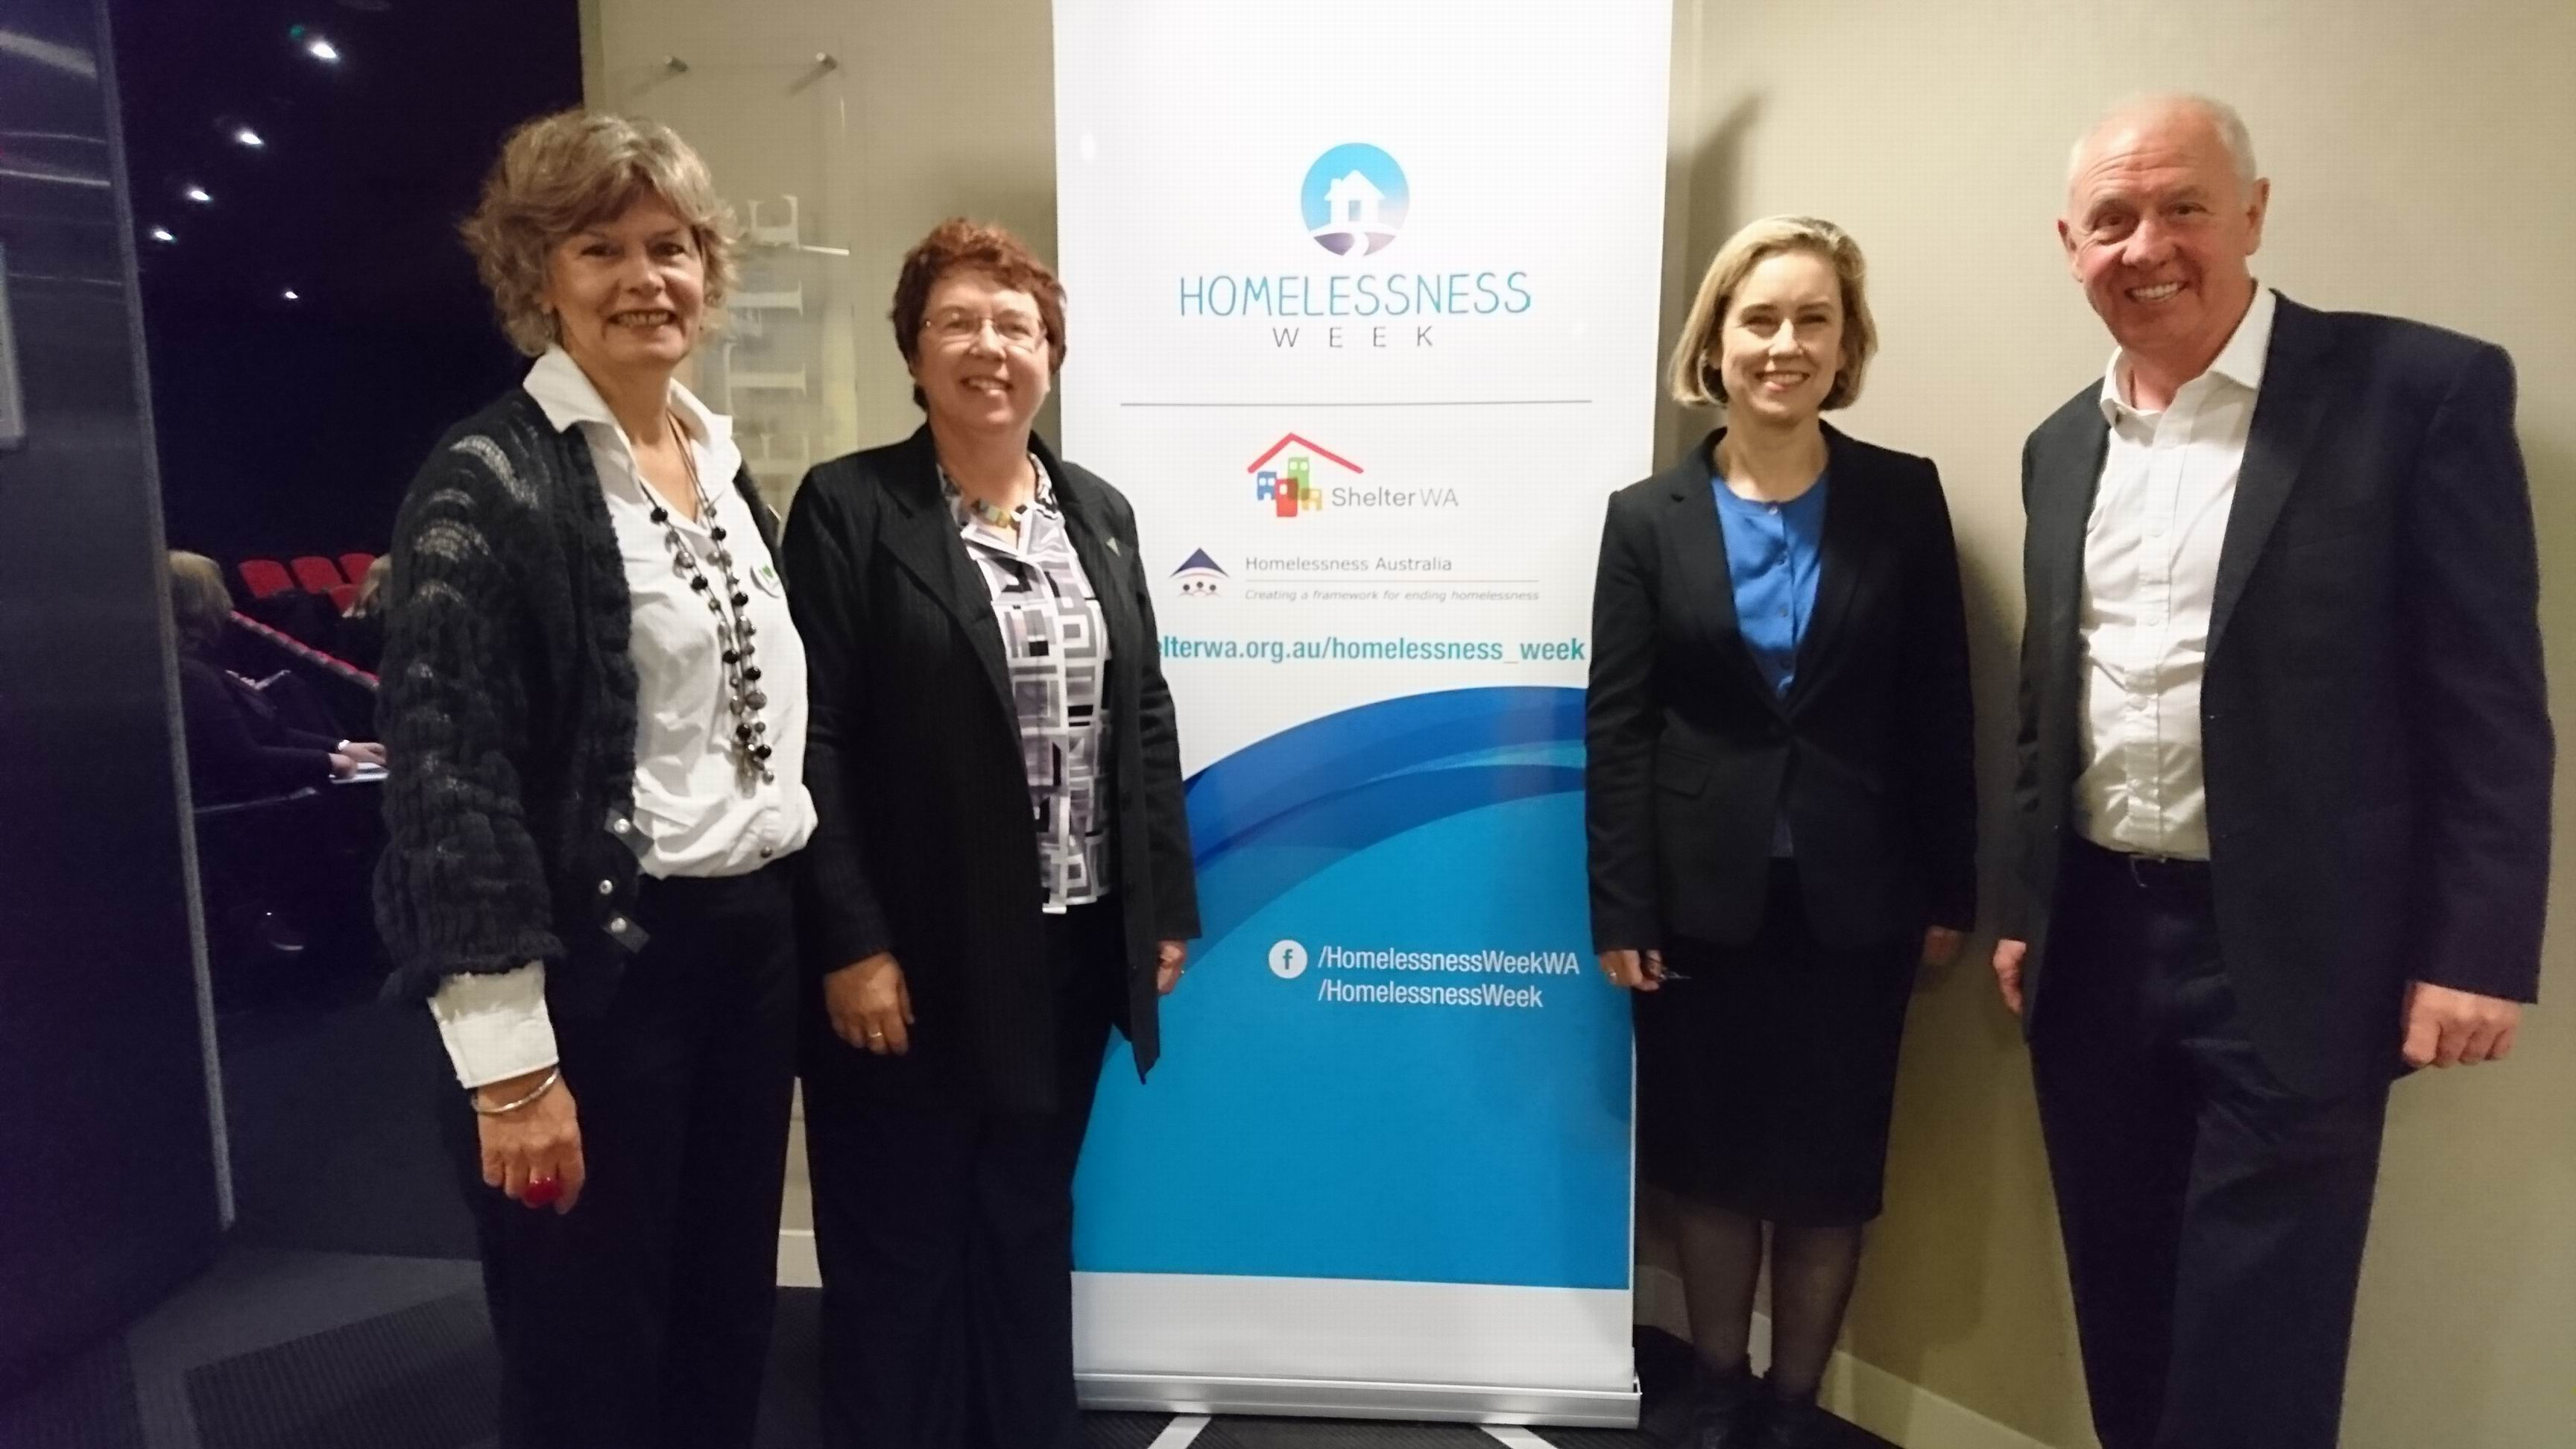 From left: Shelter WA Executive Officer Chantal Roberts, the Hon. Lynn MacLaren MLC (Greens, WA), Ms Simone McGurk MLA: Shadow Minister for Community Services,  Hon. Fran Logan MLA; Shadow Minister for Housing.